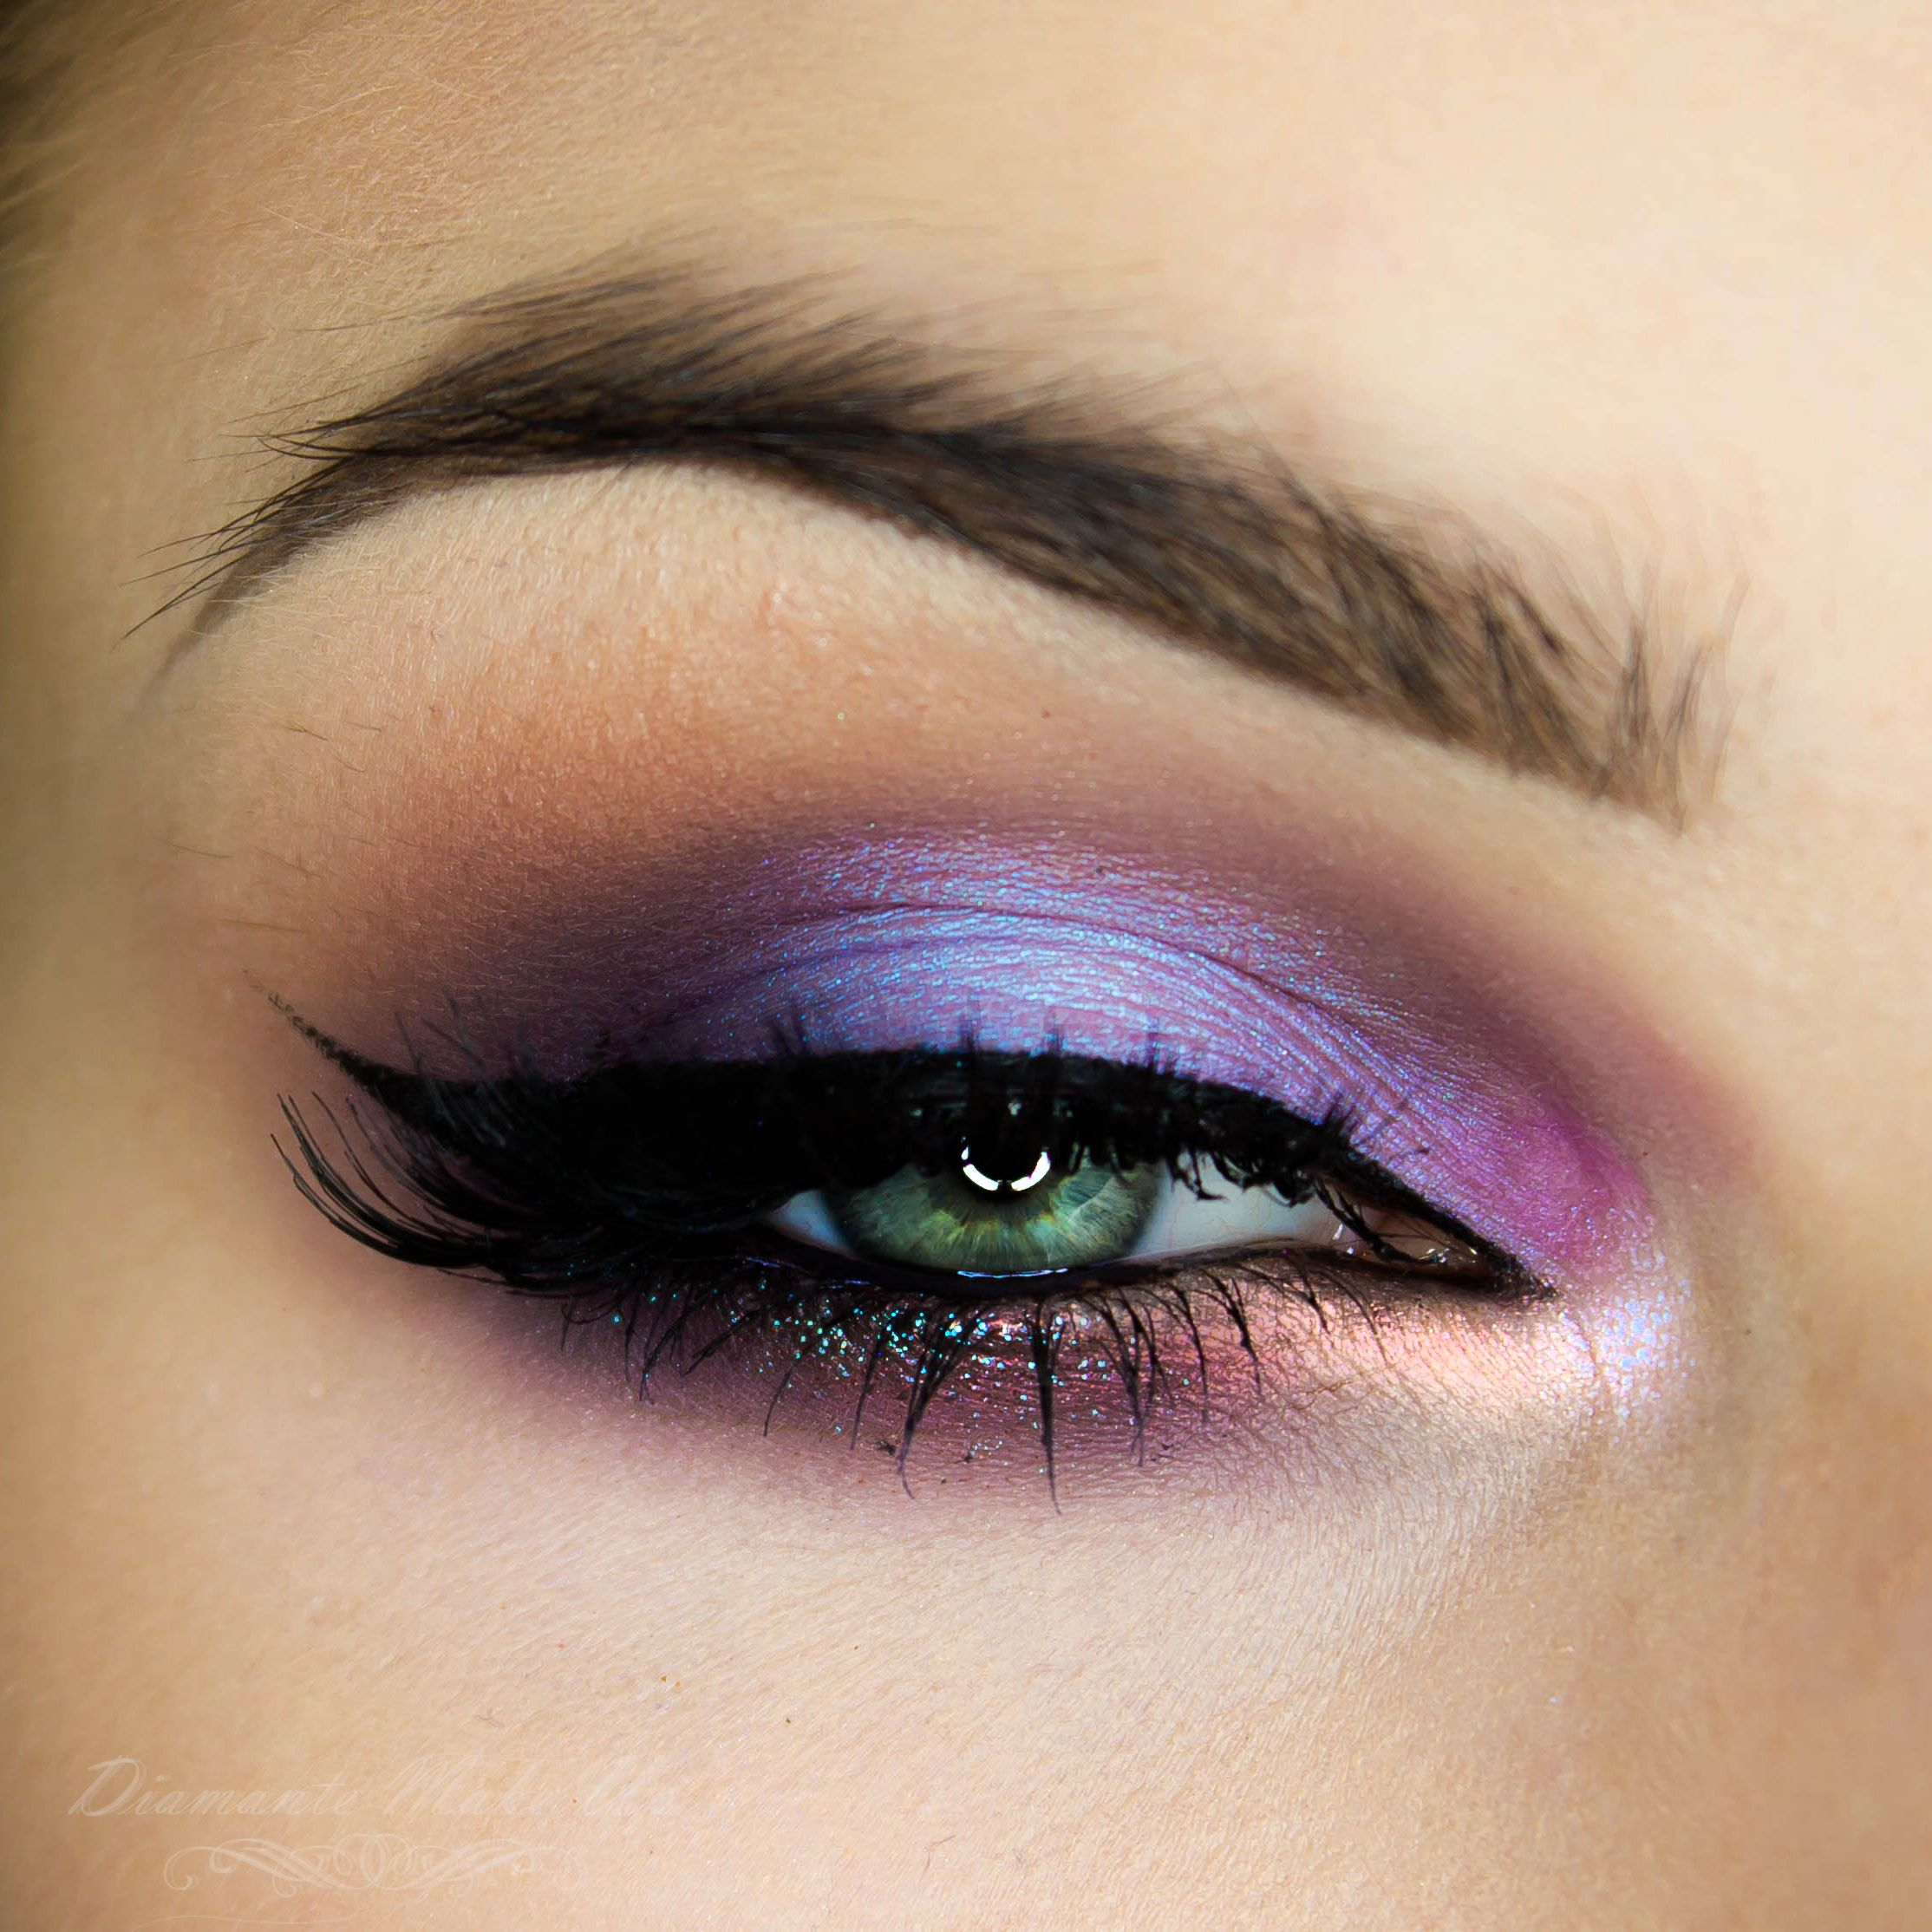 Makeup Geek Duochrome Eyeshadows in Blacklight, and